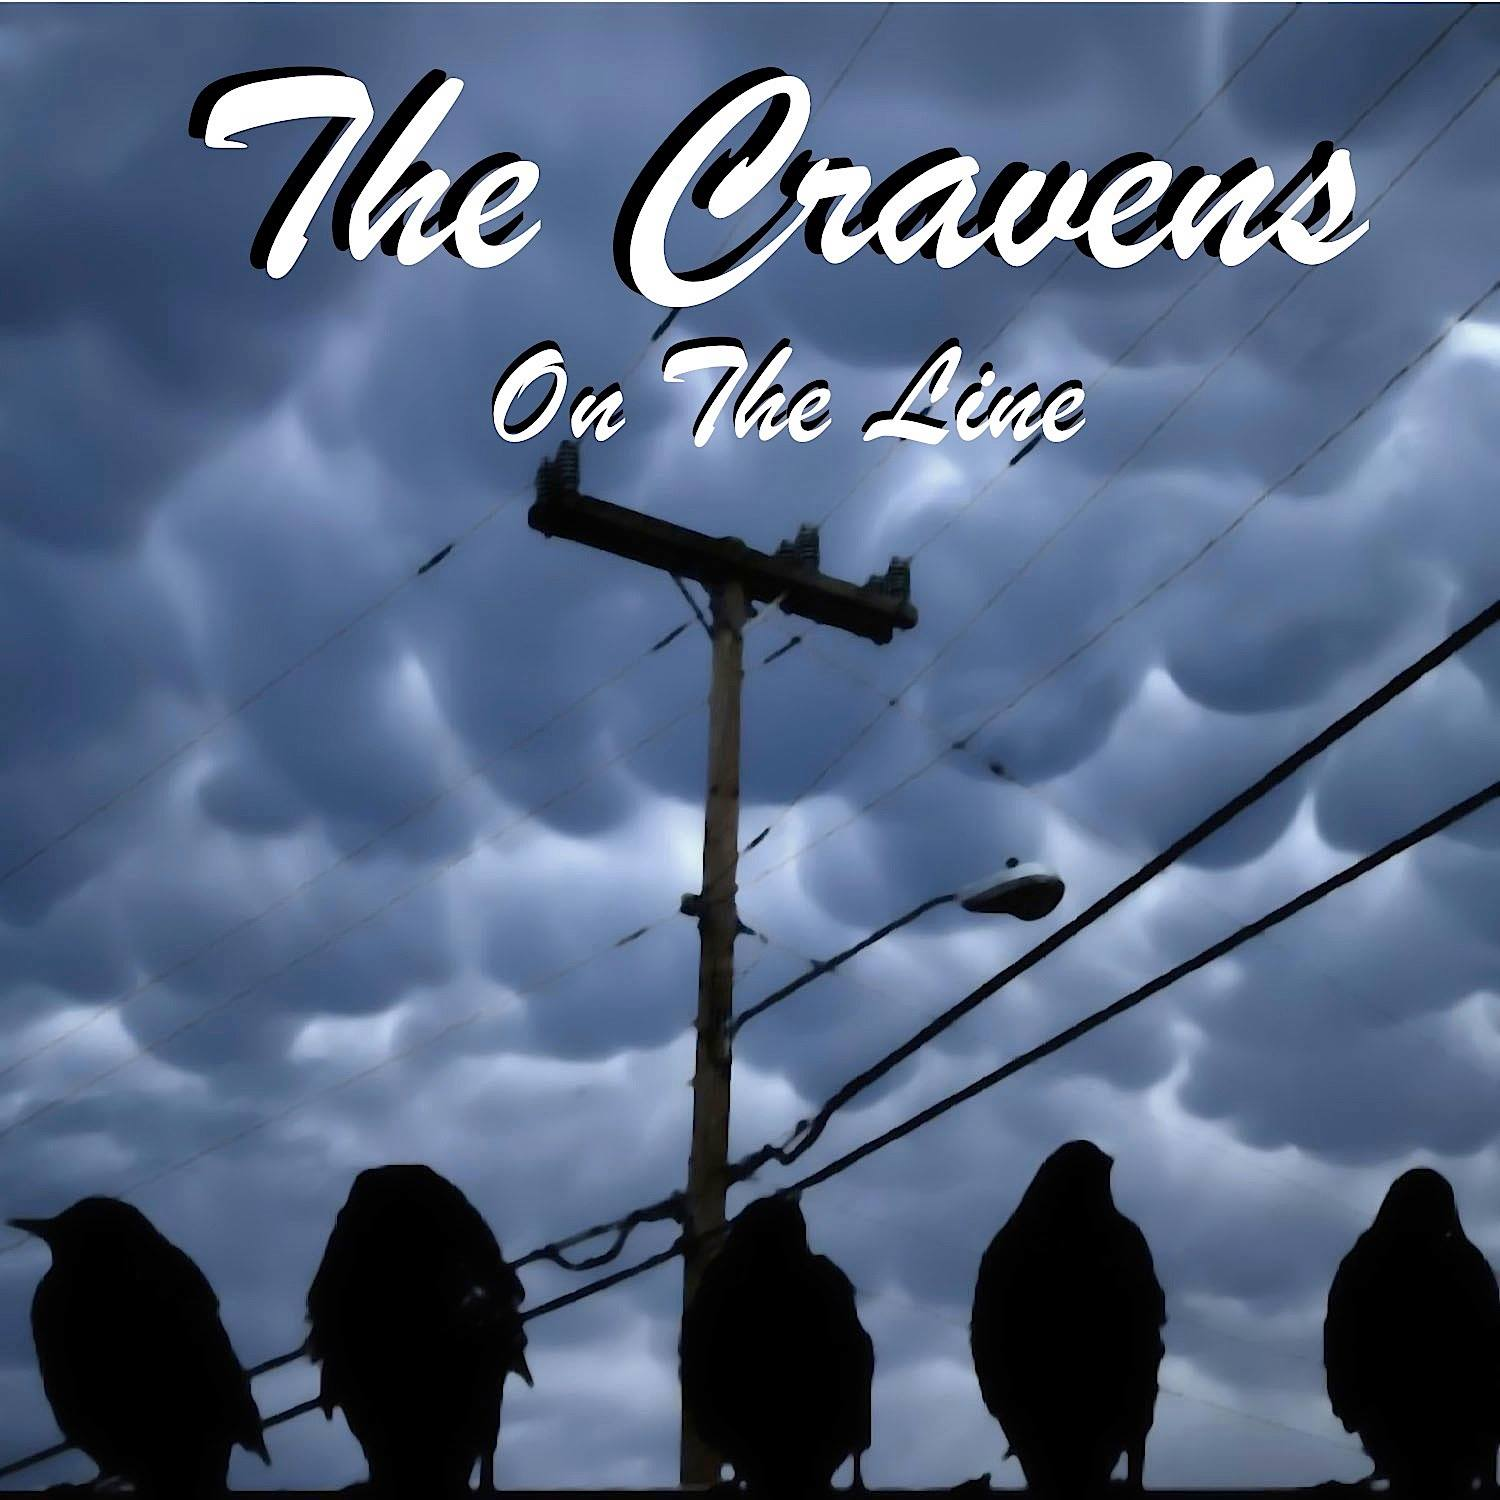 On The Line -The Cravens